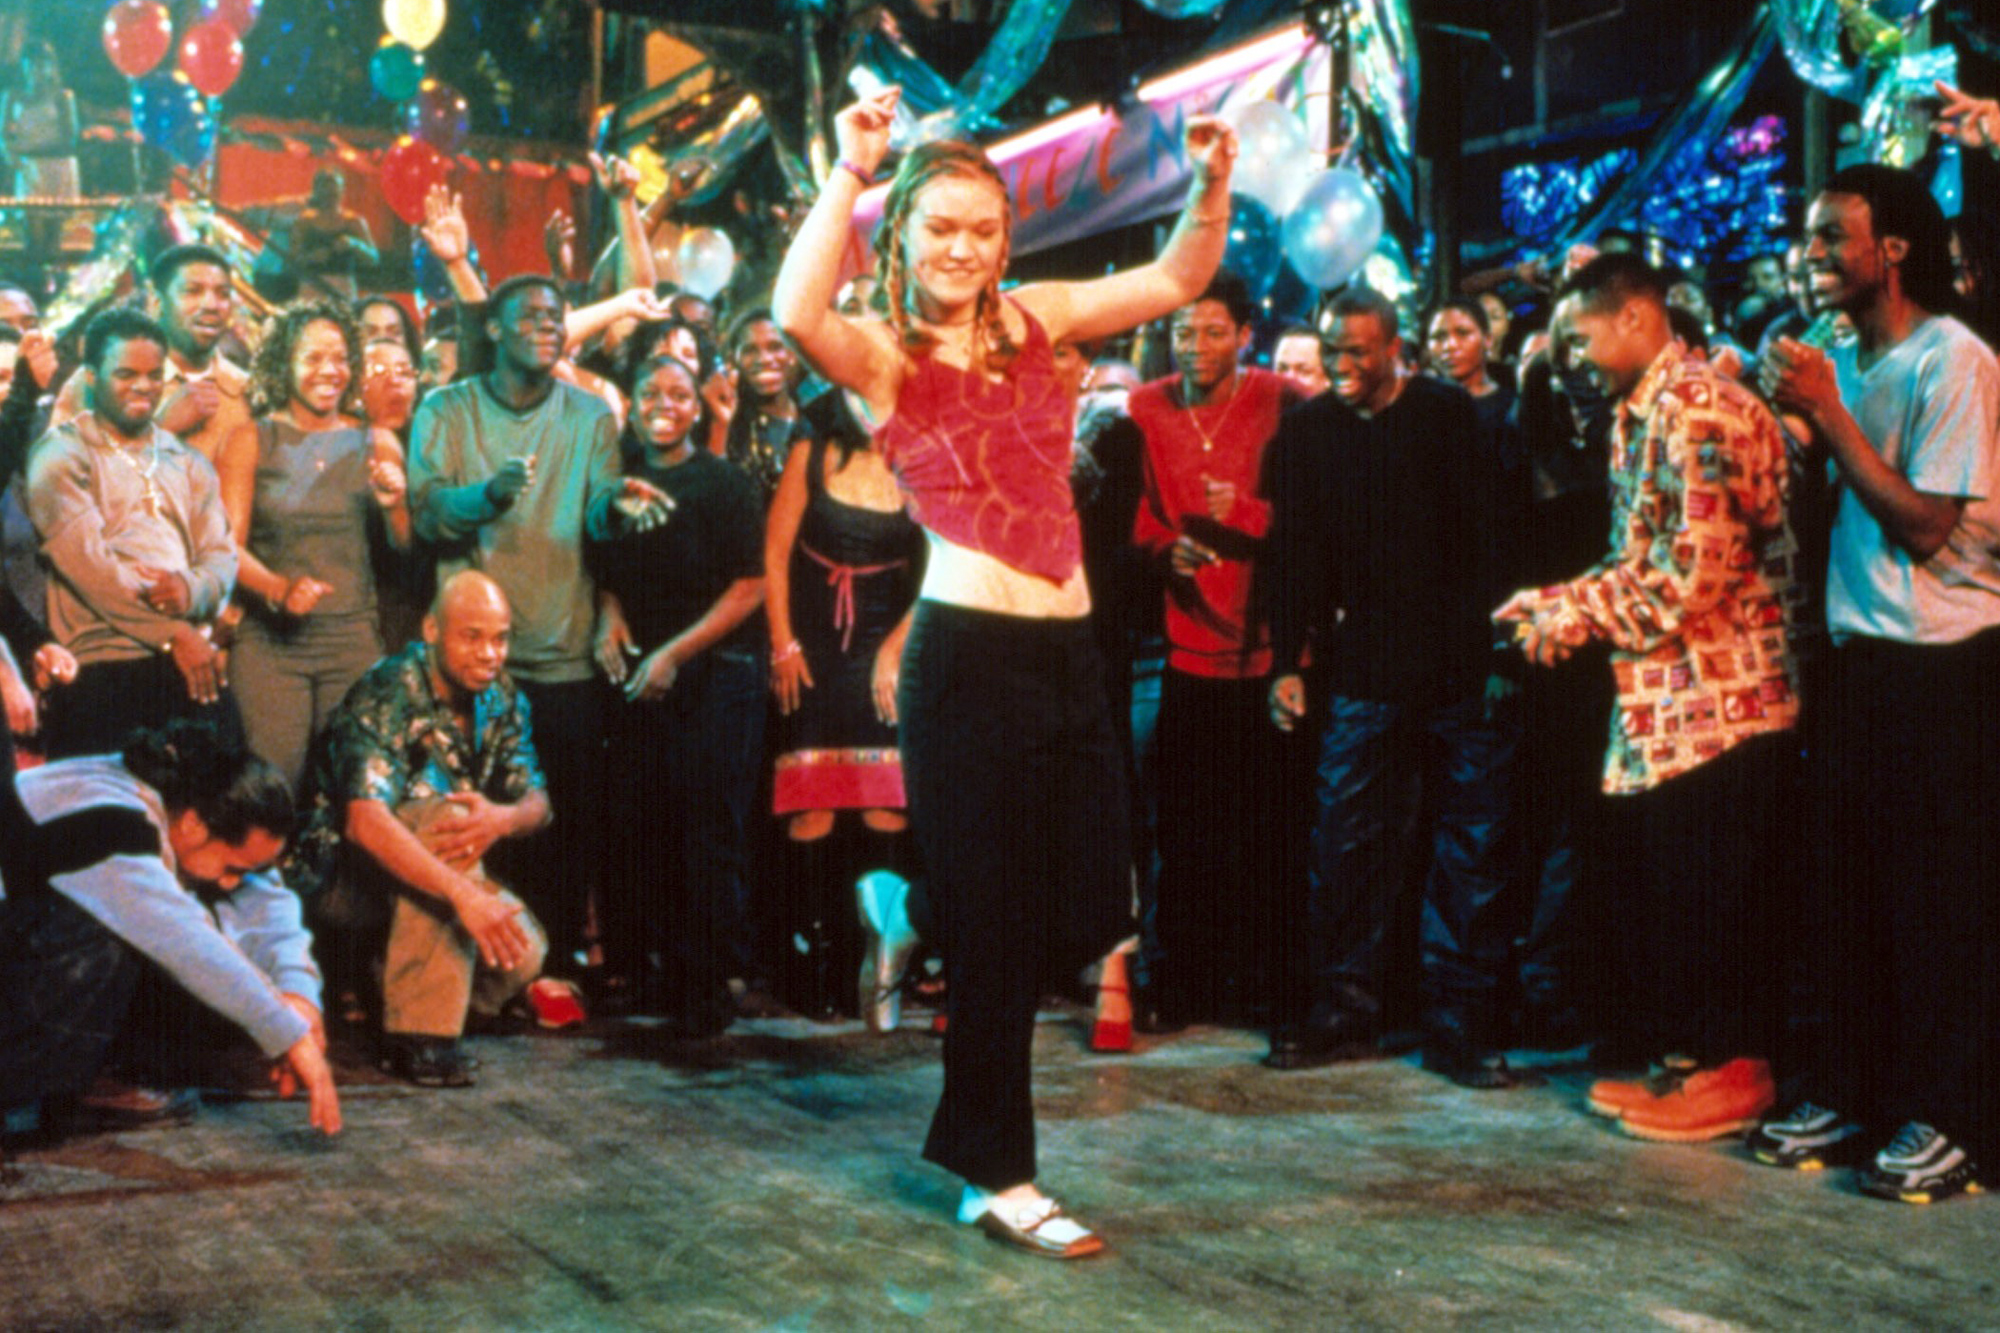 SAVE THE LAST DANCE, Julia Stiles, 2001